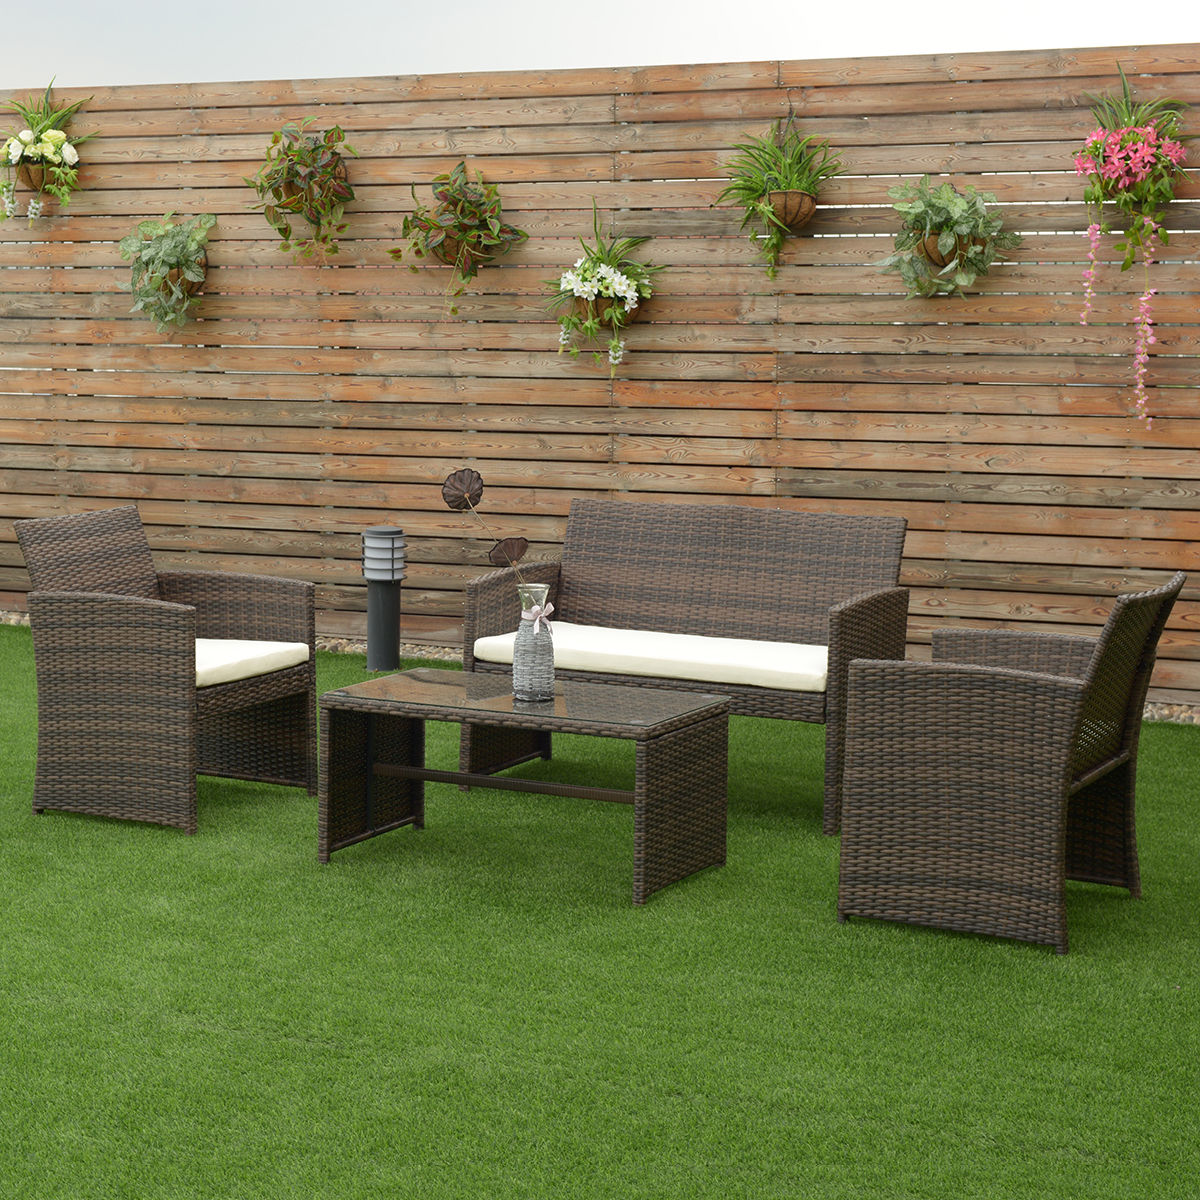 4 PCS Brown Wicker Cushioned Rattan Patio Set Garden Lawn Sofa ...